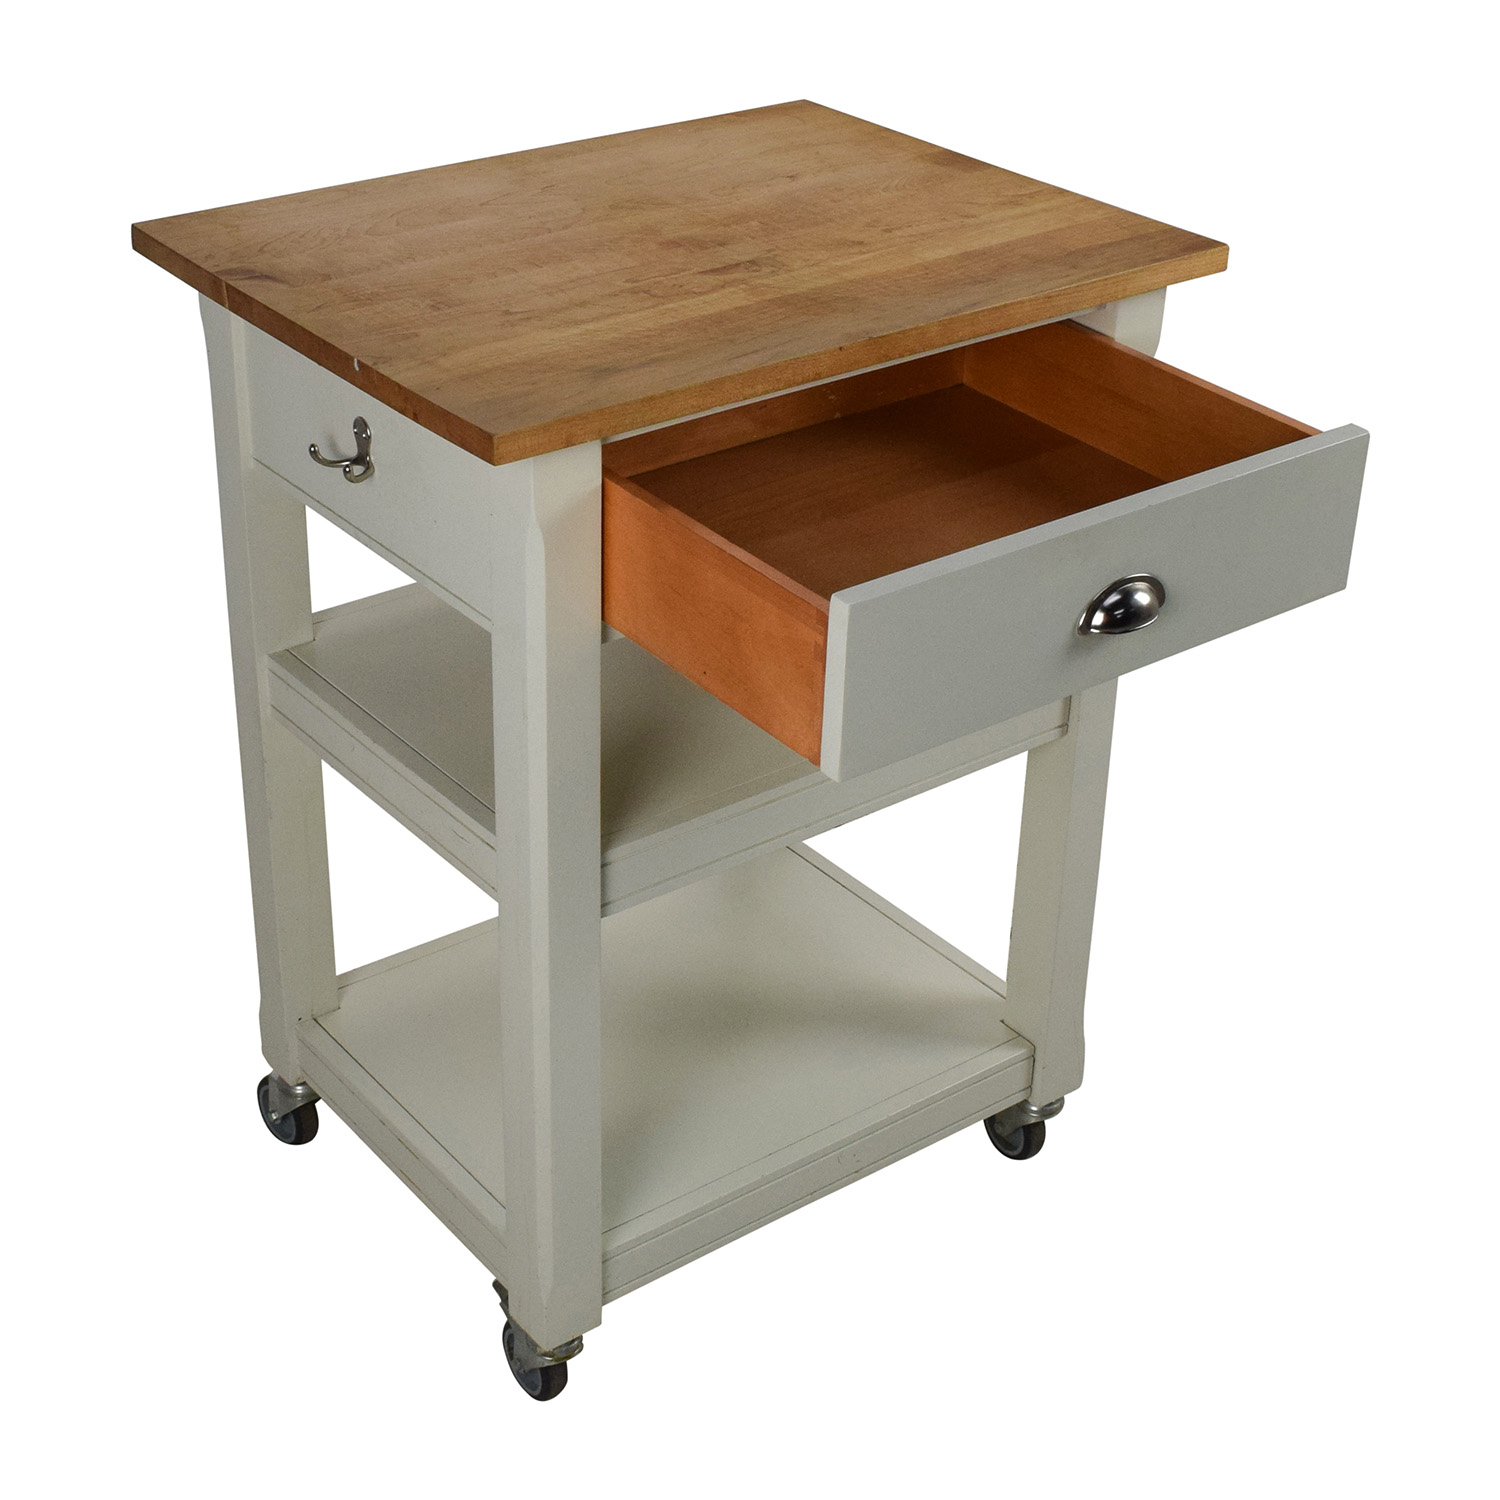 kitchen table simplify kitchen cutting table rolling kitchen